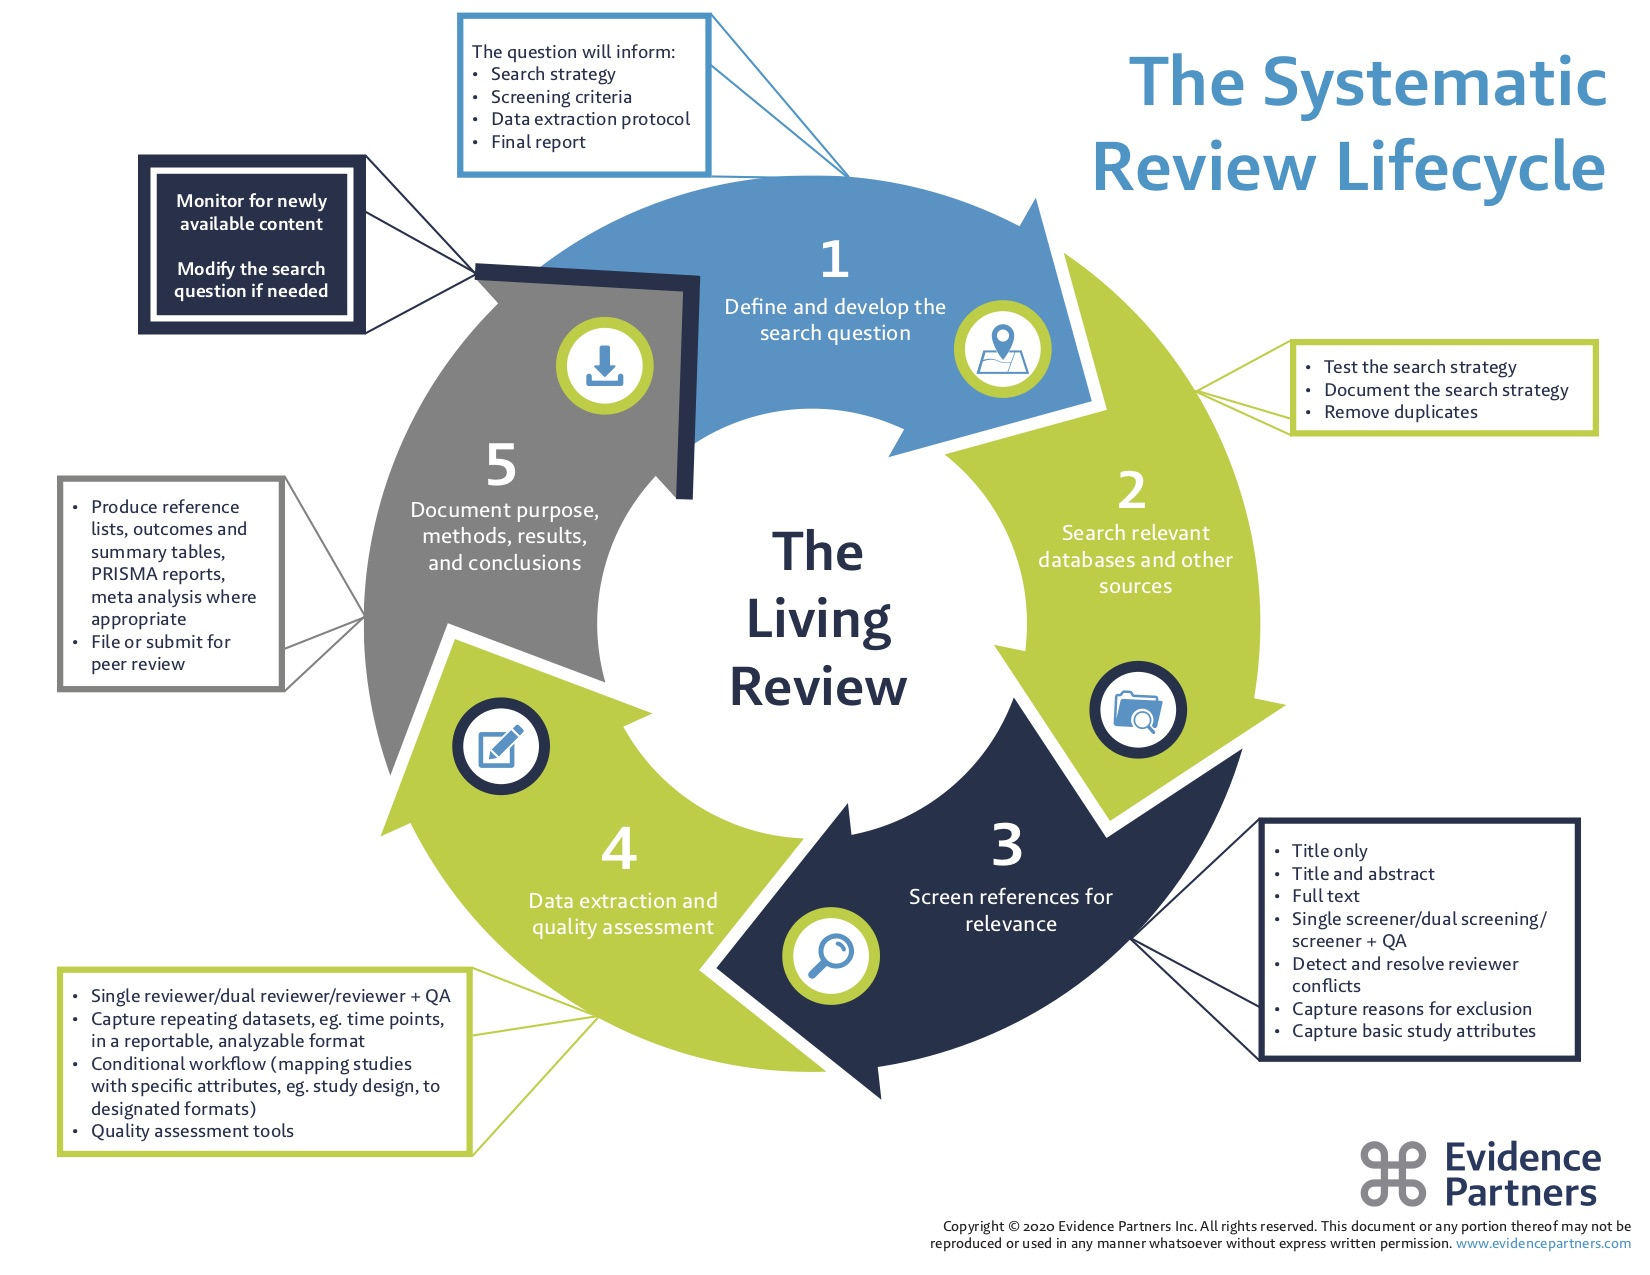 The Systematic Review Lifecycle: 1. Define and develop the research question. 2. Search relevant databases and other sources. 3. Screen references for relevant. 4. Data extraction and quality assessment. 5. Document purpose, methods, results, and conclusions. Monitor for newly available content and modify the search question if needed.